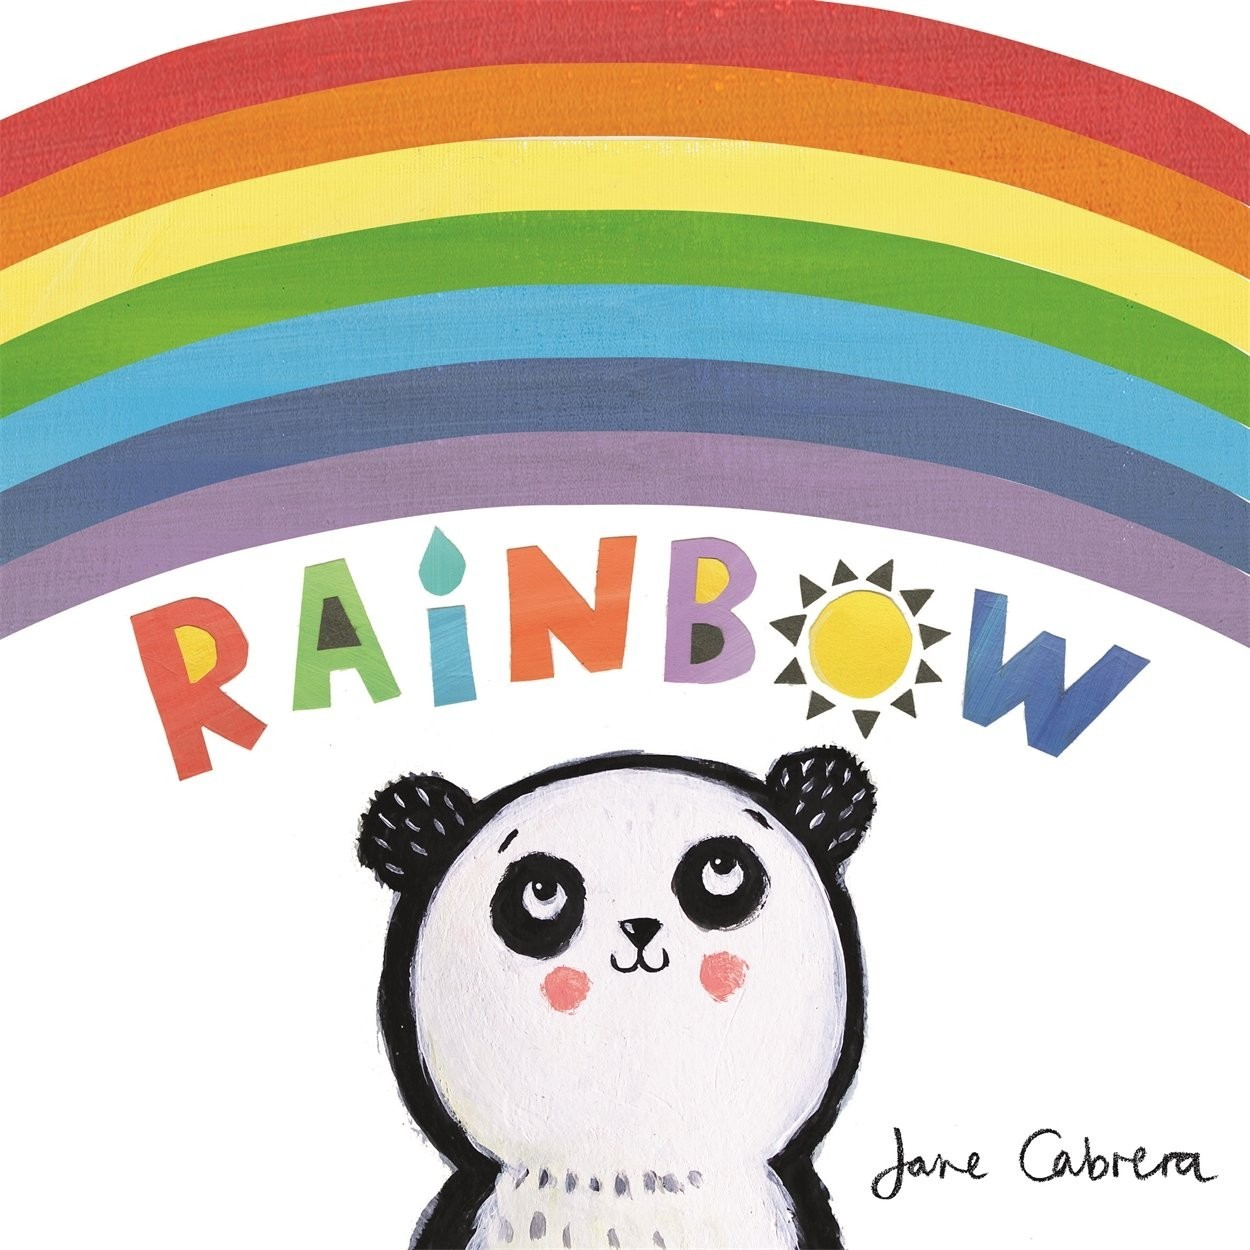 A clever dye-cut board book that reflects the shape of a rainbow. Each arch-shaped page reveals a new colour and features beautiful, bold creatures painted in Jane Cabrera's stunning trademark style.